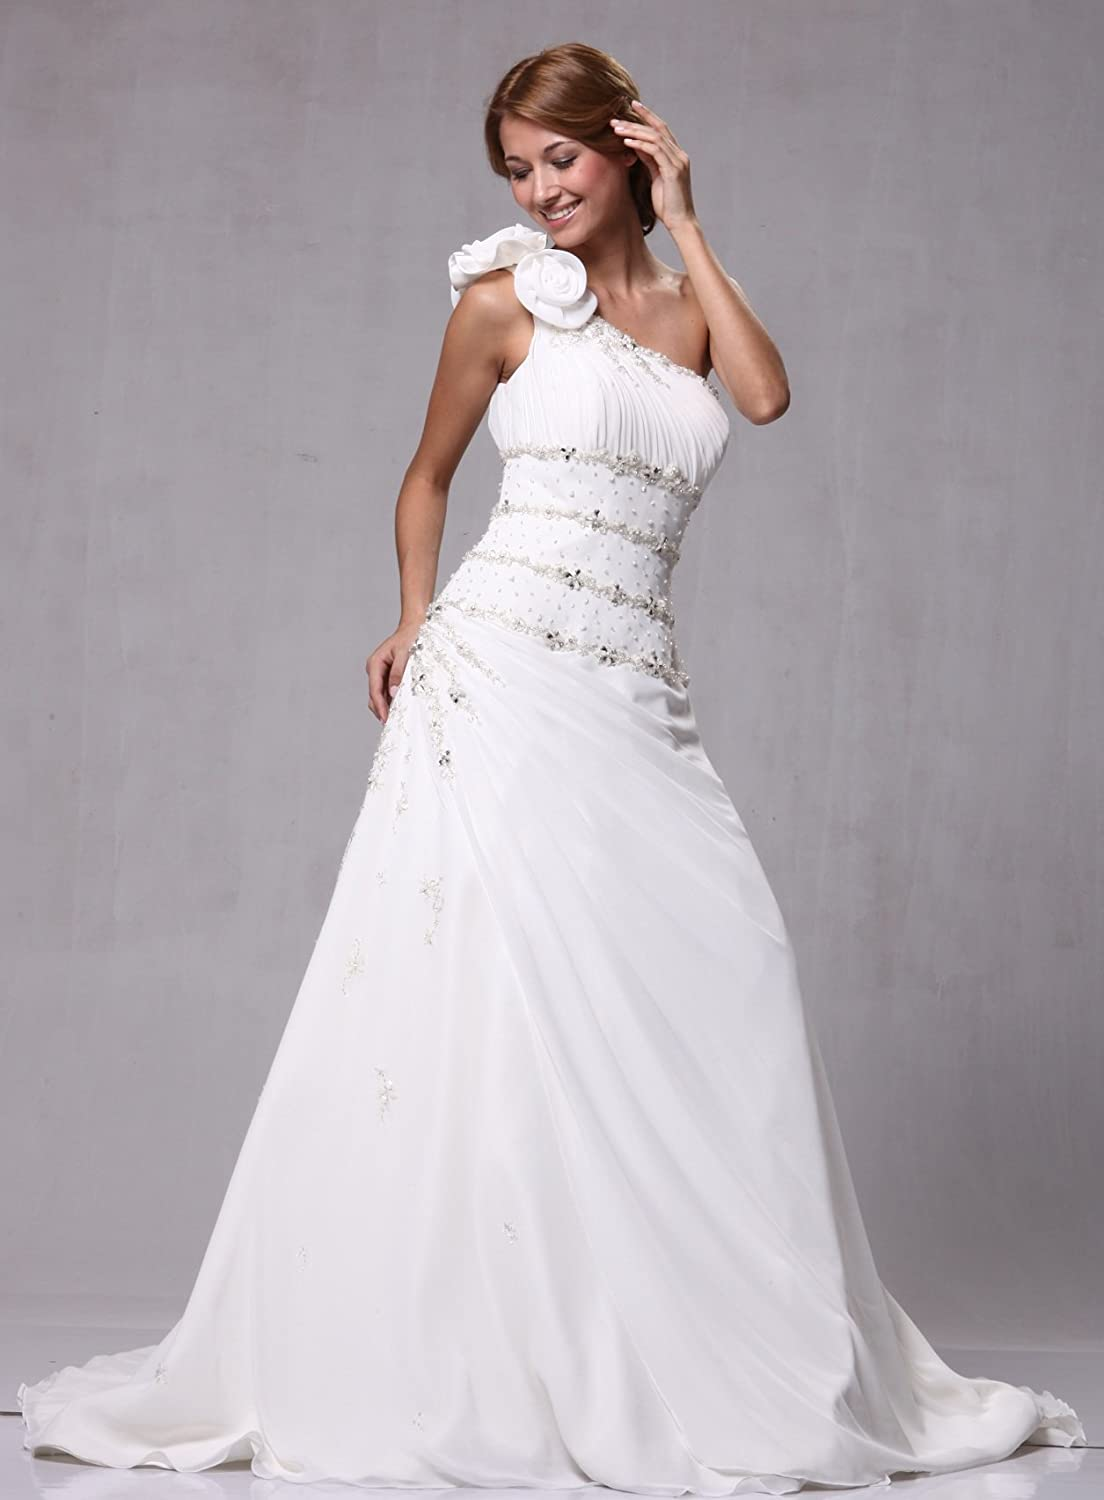 Satin Chiffon One Shoulder Bridal Wedding Formal Gown